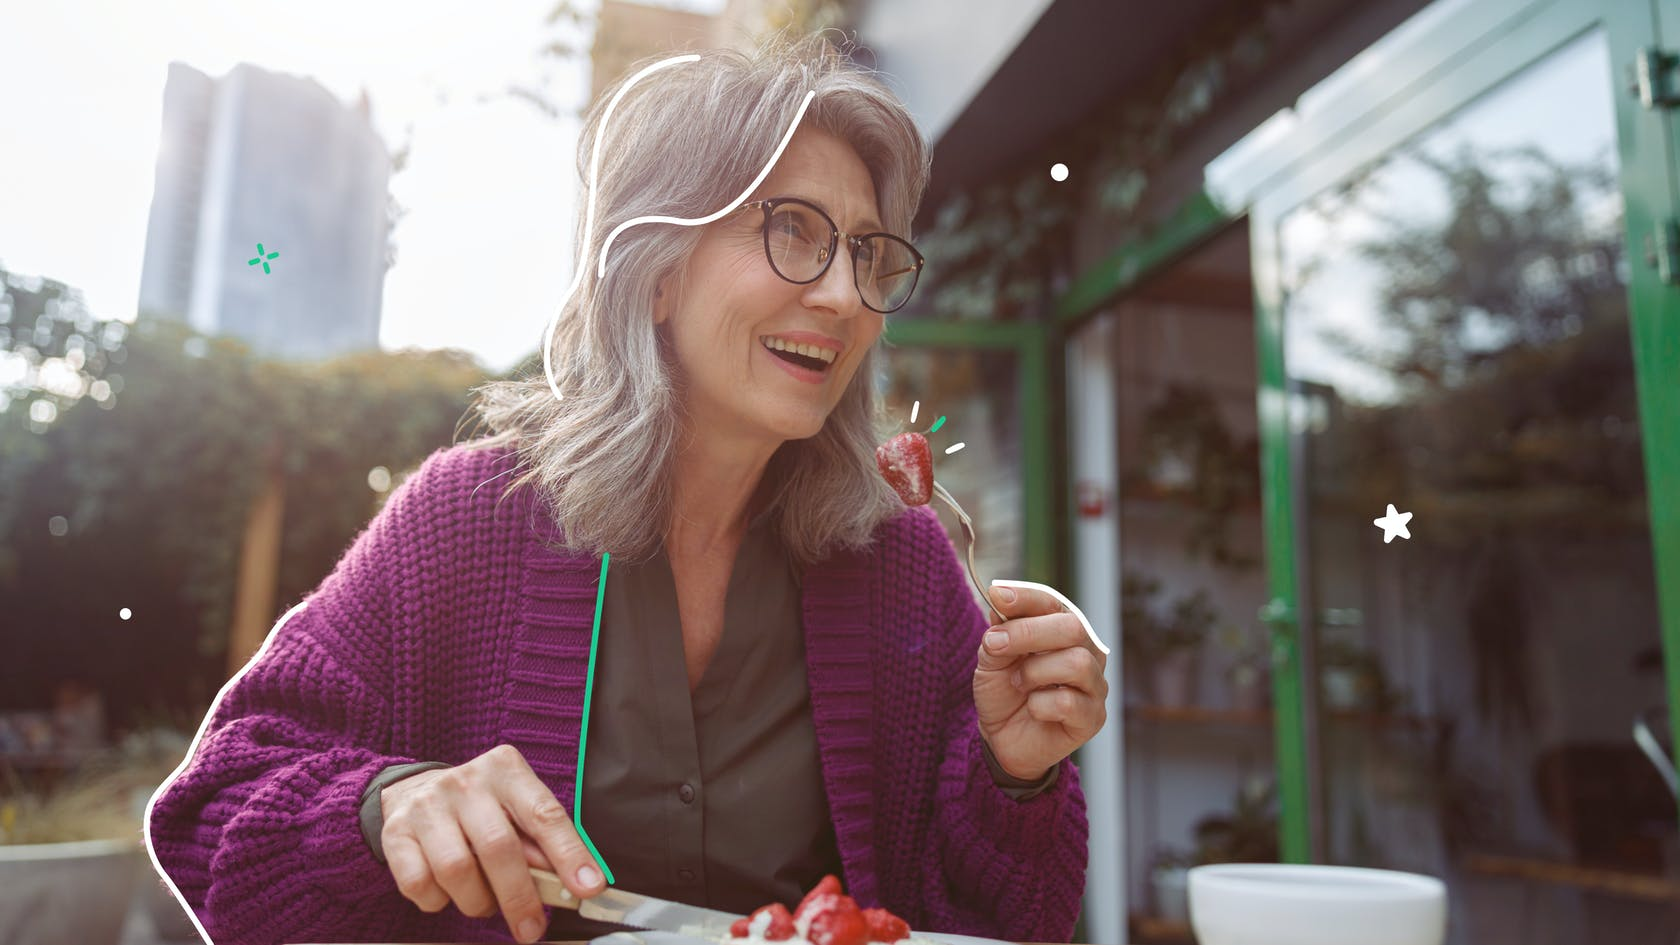 Keto And Menopause: Can a Low-Carb Diet Help?